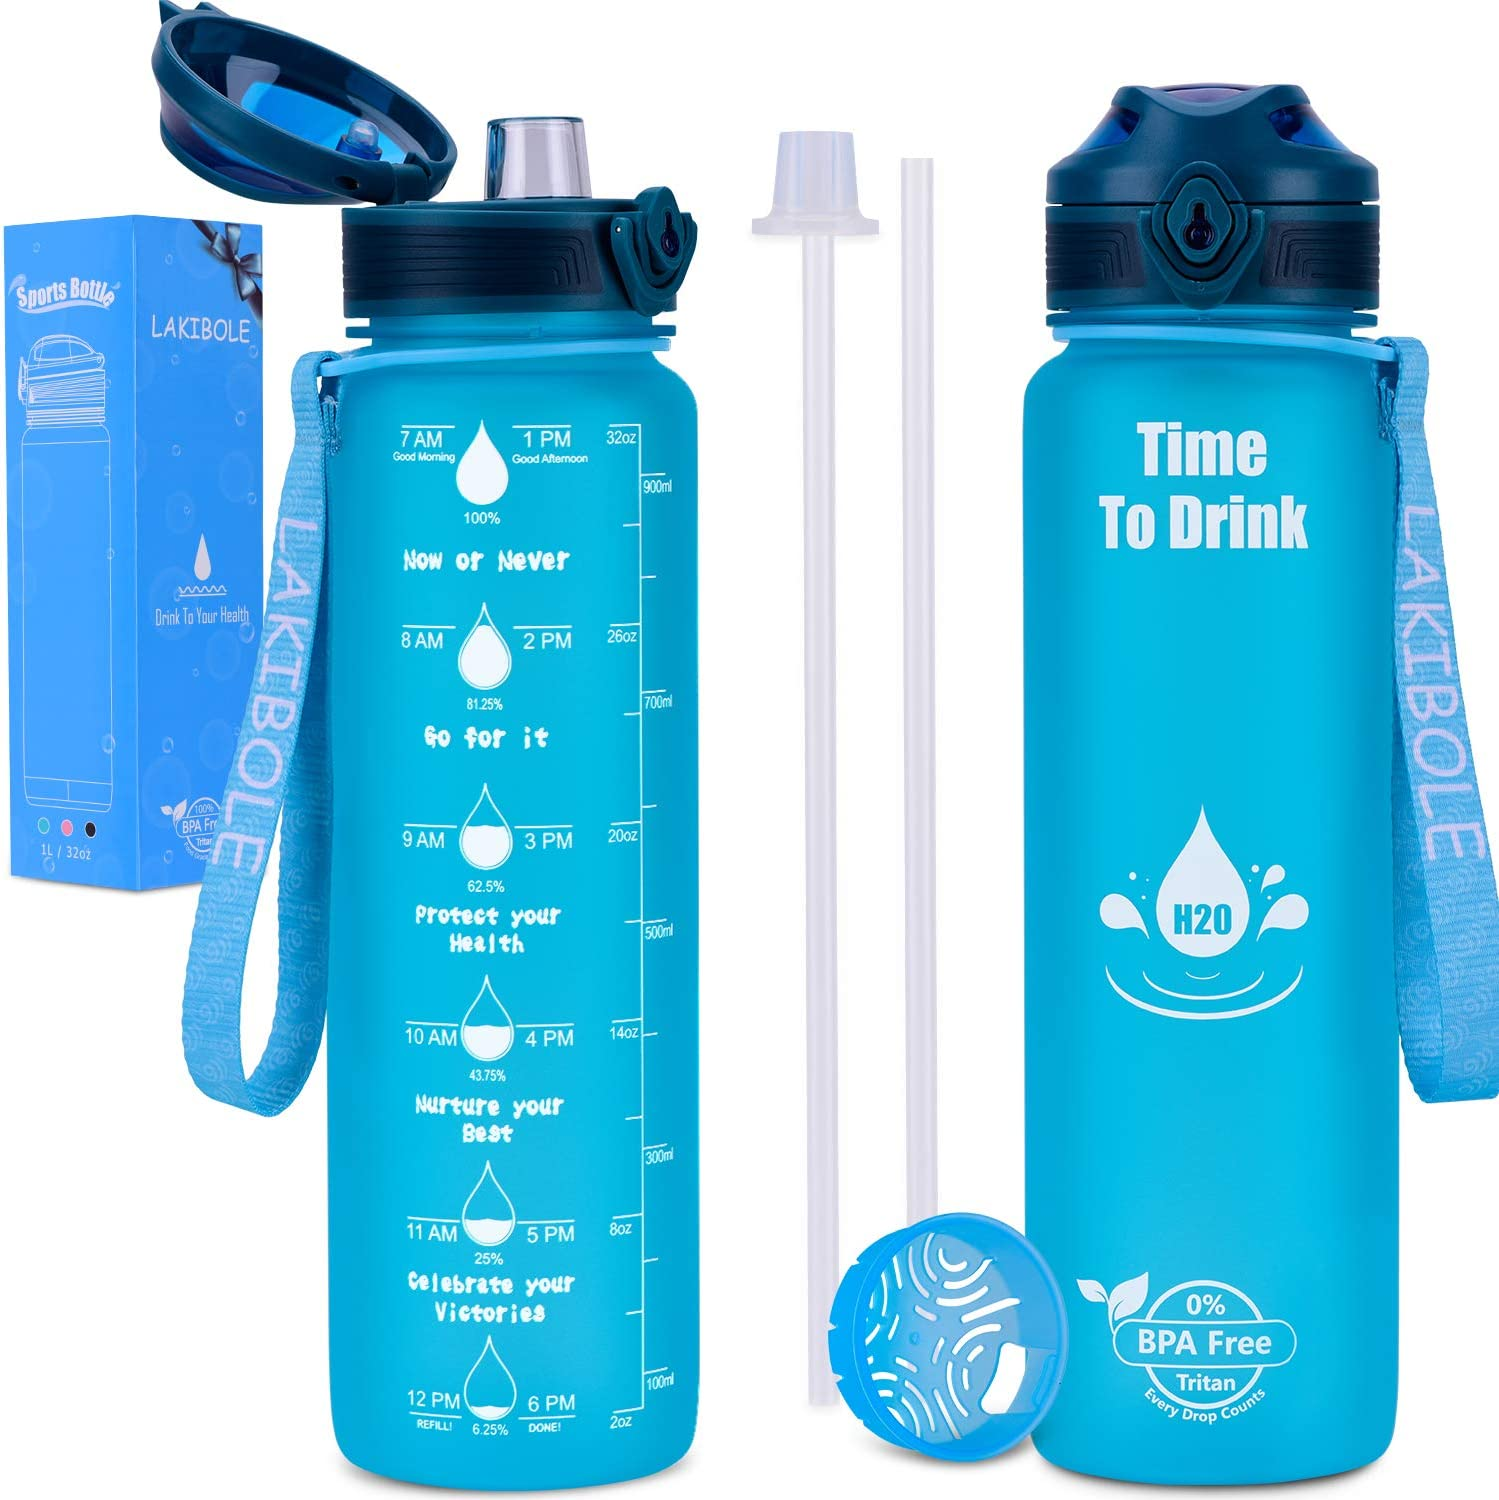 LAKIBOLE 32 oz Water Bottle with Straws with Time Marker, Time to Drink Water Bottle for Office, Gym, Home, Health Gift